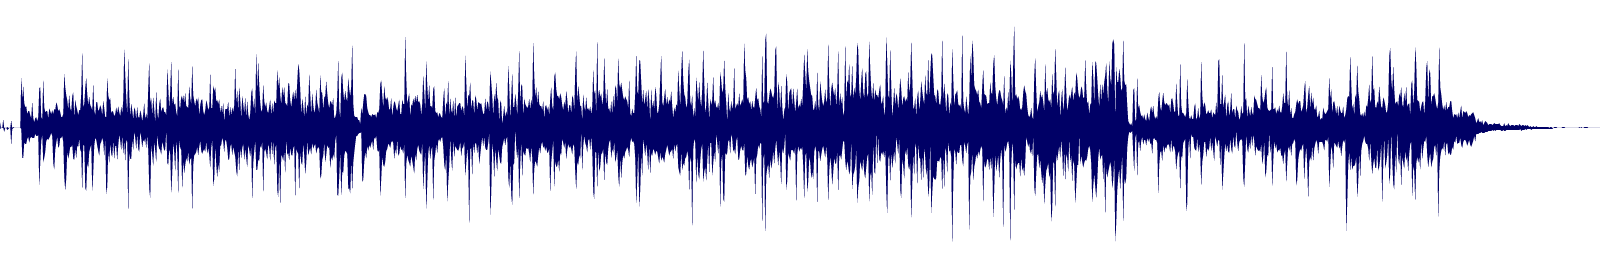 waveform of track #95081